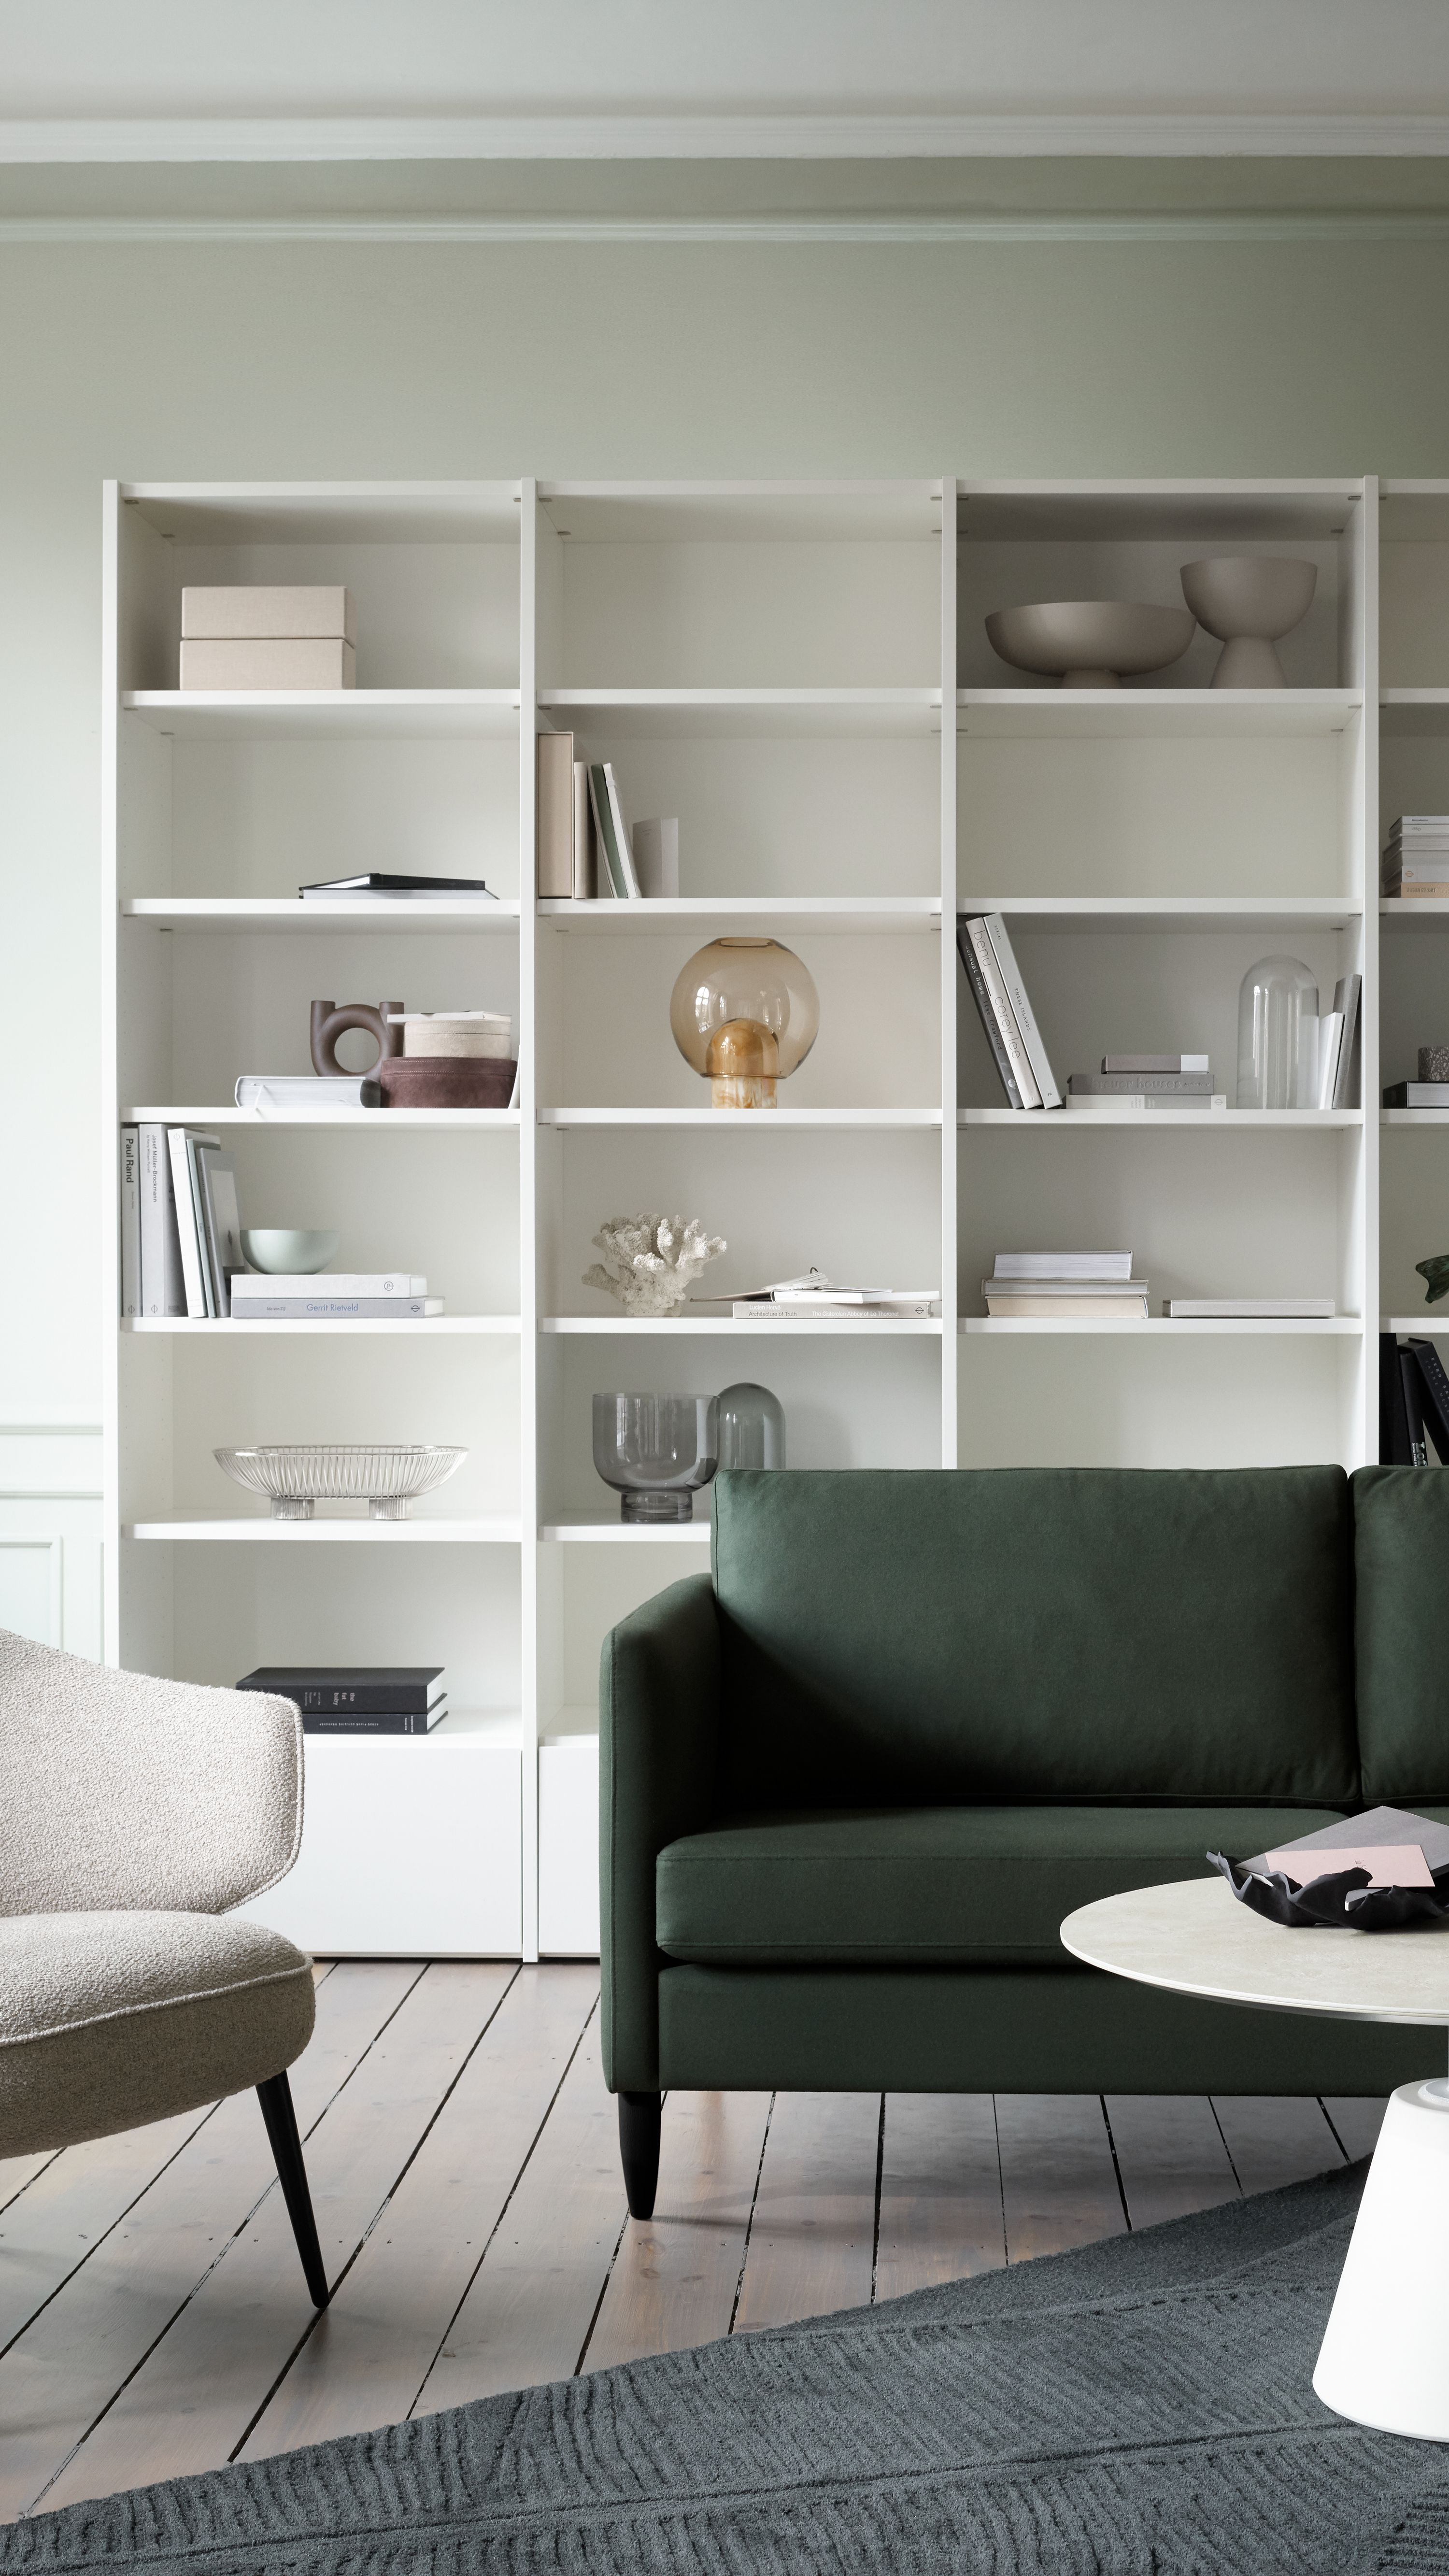 Compact Living Inspiration For Small Livingroom Ideas Maximise The Room With Space Savin In 2020 Small Living Room Furniture Small Living Rooms Space Saving Furniture #space #saver #living #room